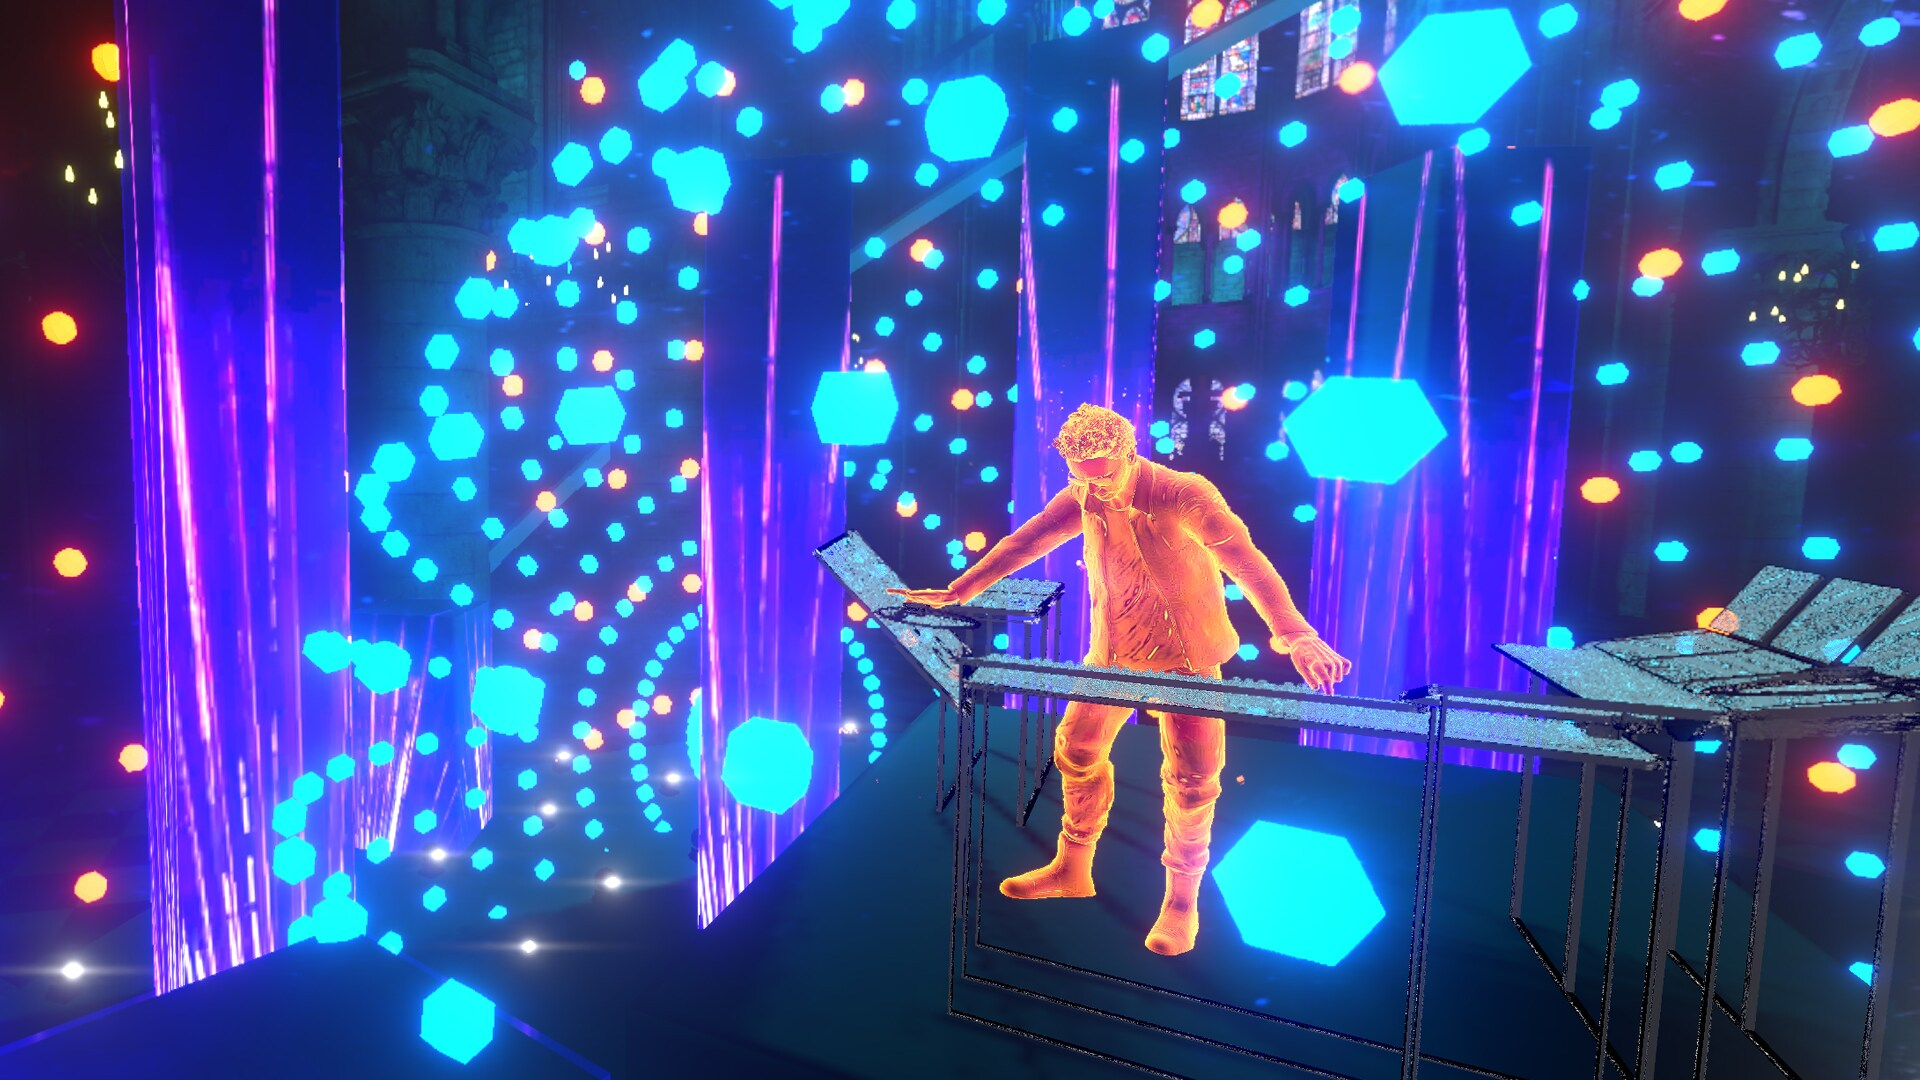 """Image displays the virtual New Year's Eve concert """"Welcome to the Other Side"""" and features a colorful blue and purple background with sparkly lights and a musician in the foreground playing a keyboard"""